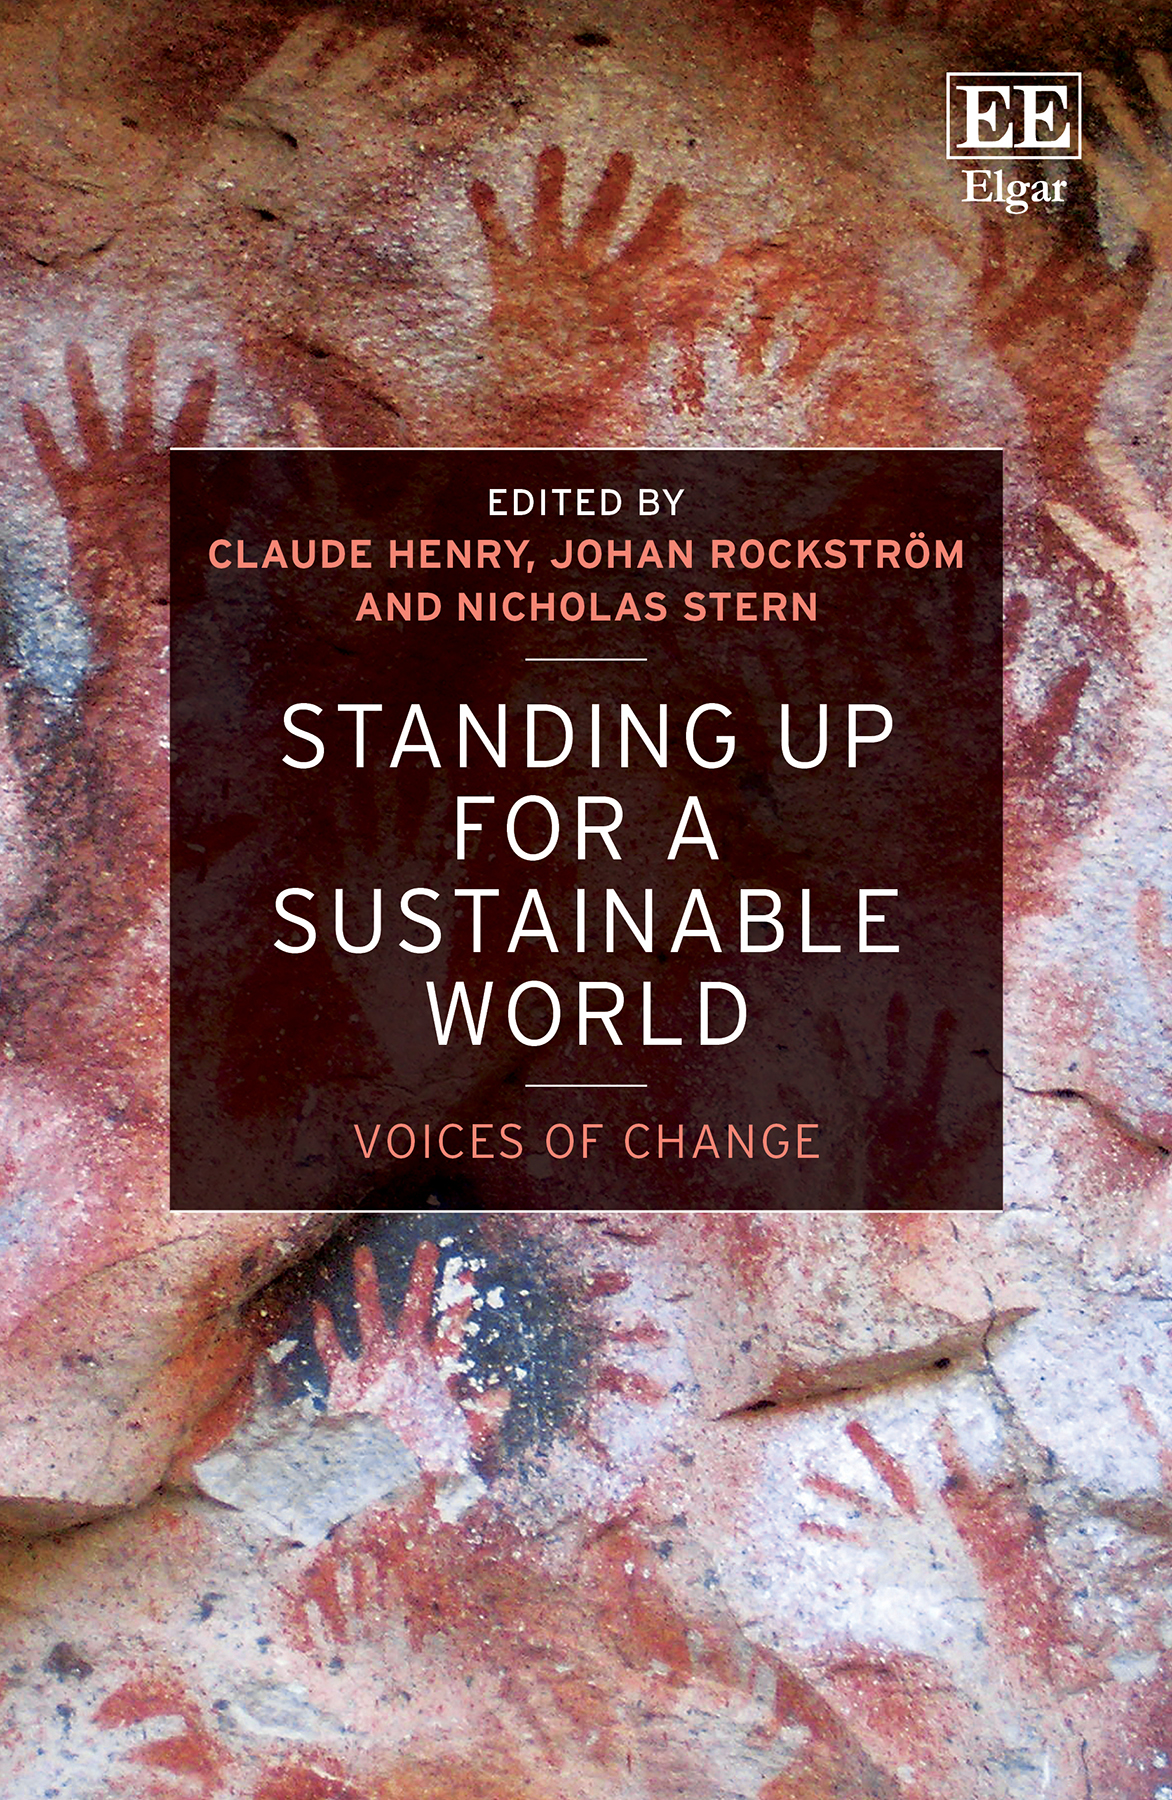 Standing up for a Sustainable World – new book co-edited by Johan Rockström explores modes of resistance against systemic natural destruction